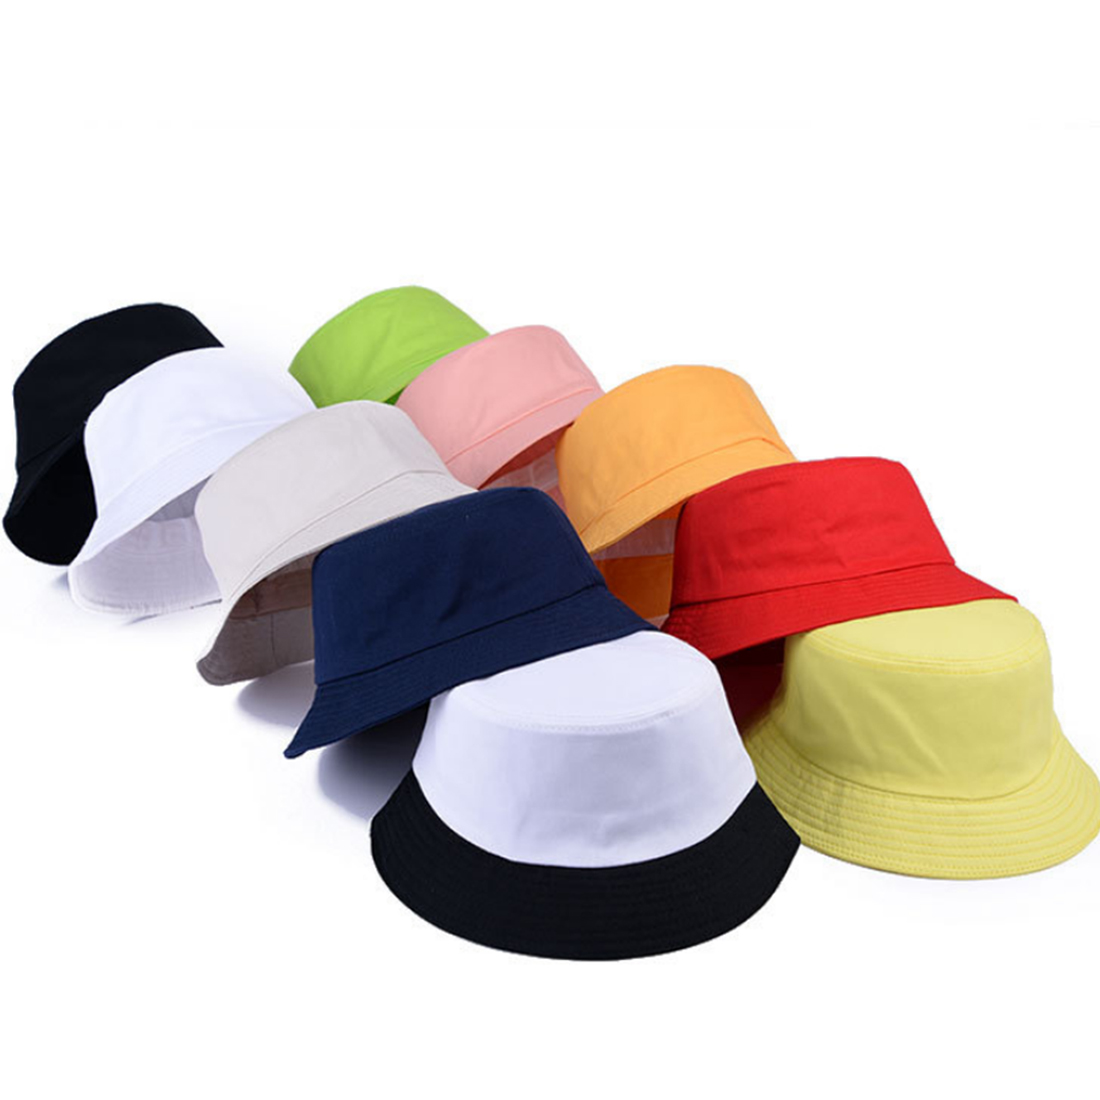 Korean jelly-colored Solid Color Bucket Hats for Men Panama Women Hat fisherman hat Street DIY portable basin hat tide visor